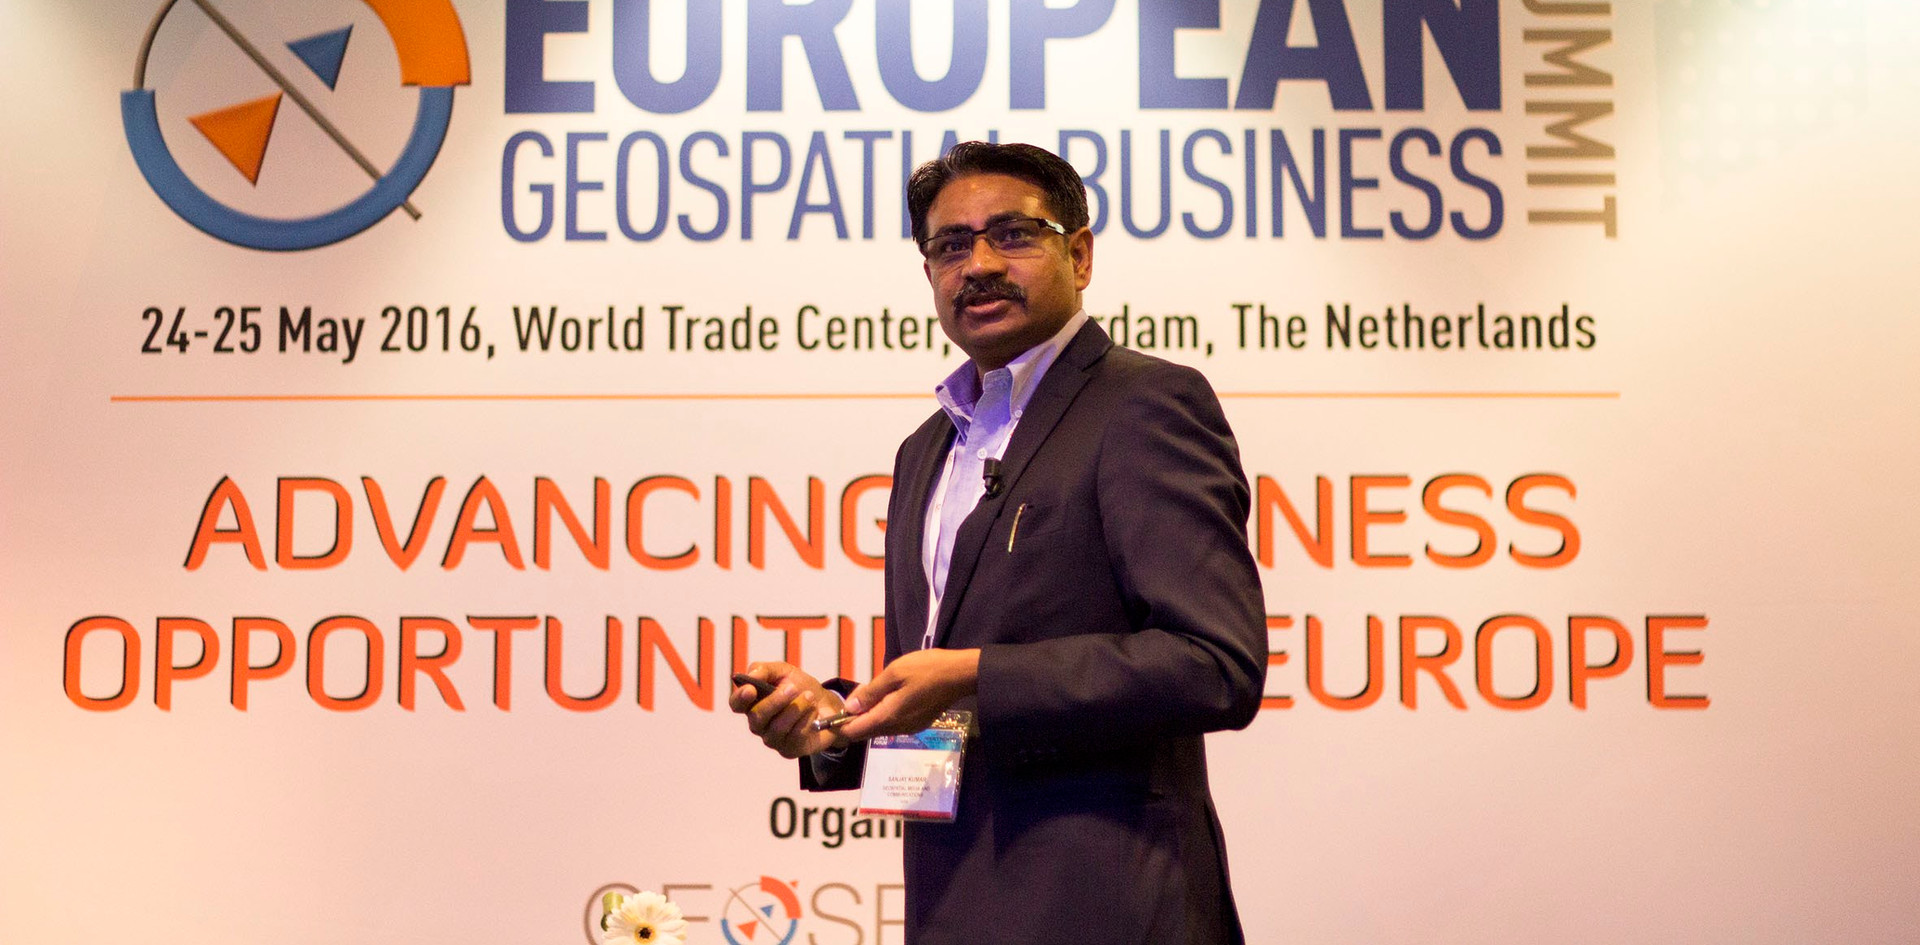 Talking to the geospatial industry leaders